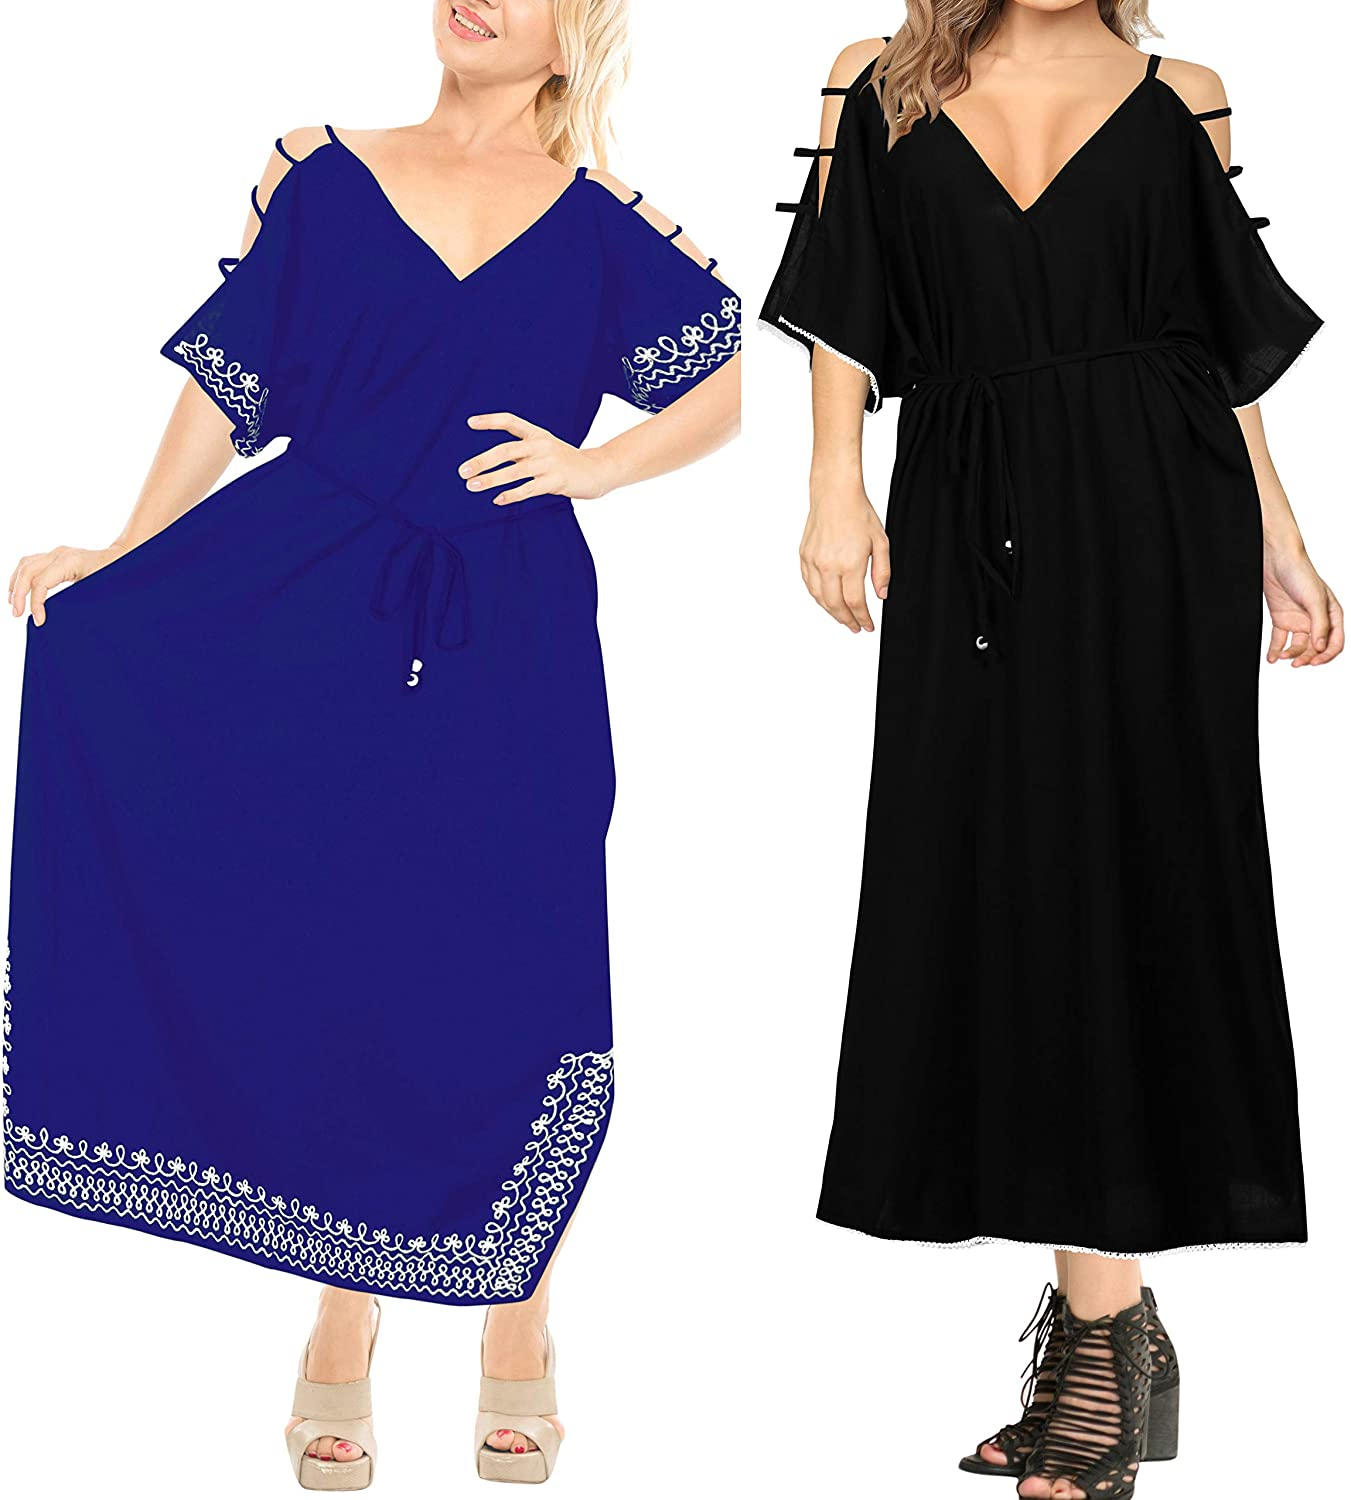 LA LEELA Womens Kaftan Lounge Dress Sleepwear Swim Cover Up US 18-20W Pack of 2